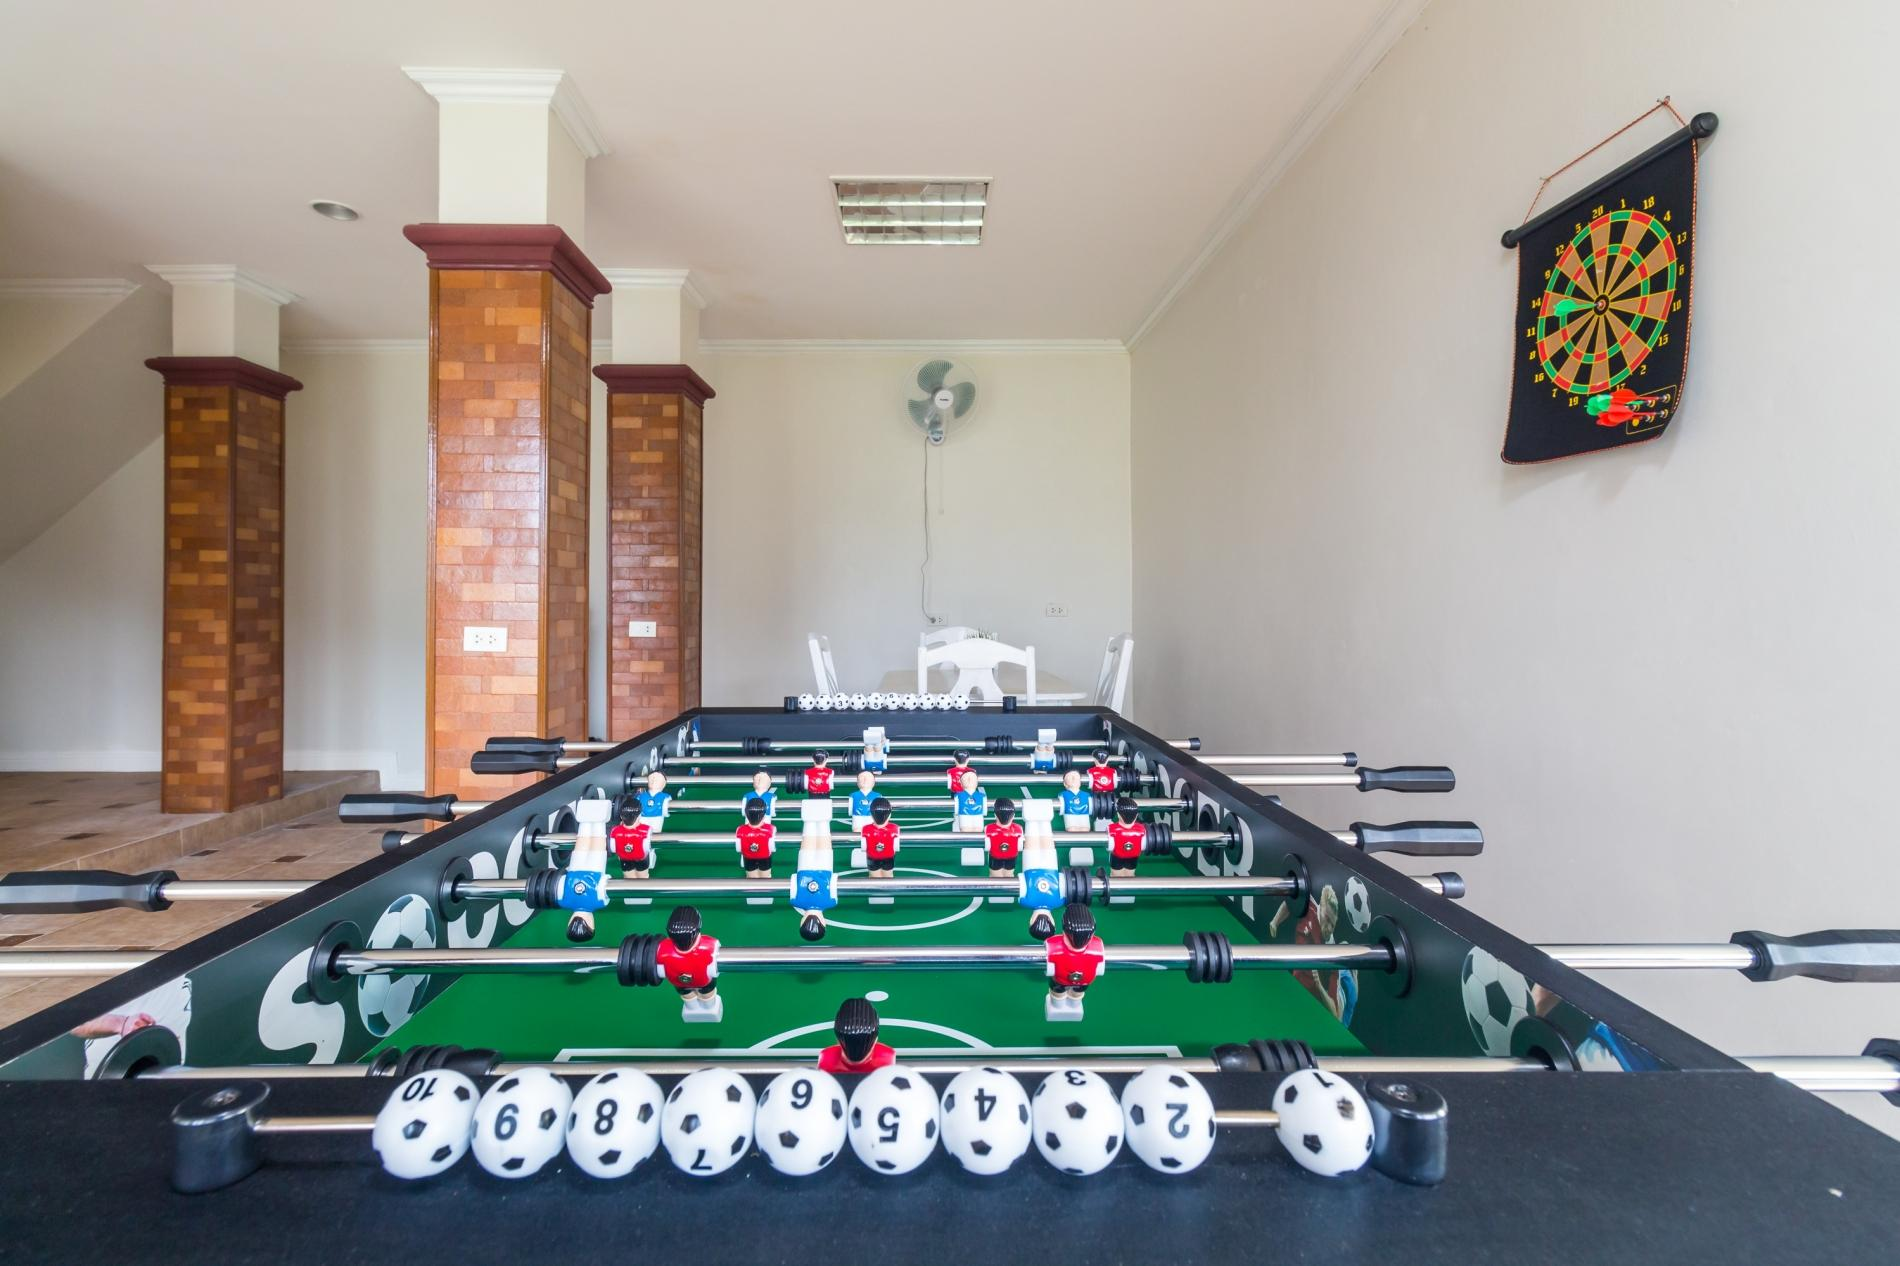 Apartment 50pee - Seaview pool villa in Patong  boxing bag  foosball table  darts and fun  photo 20318526